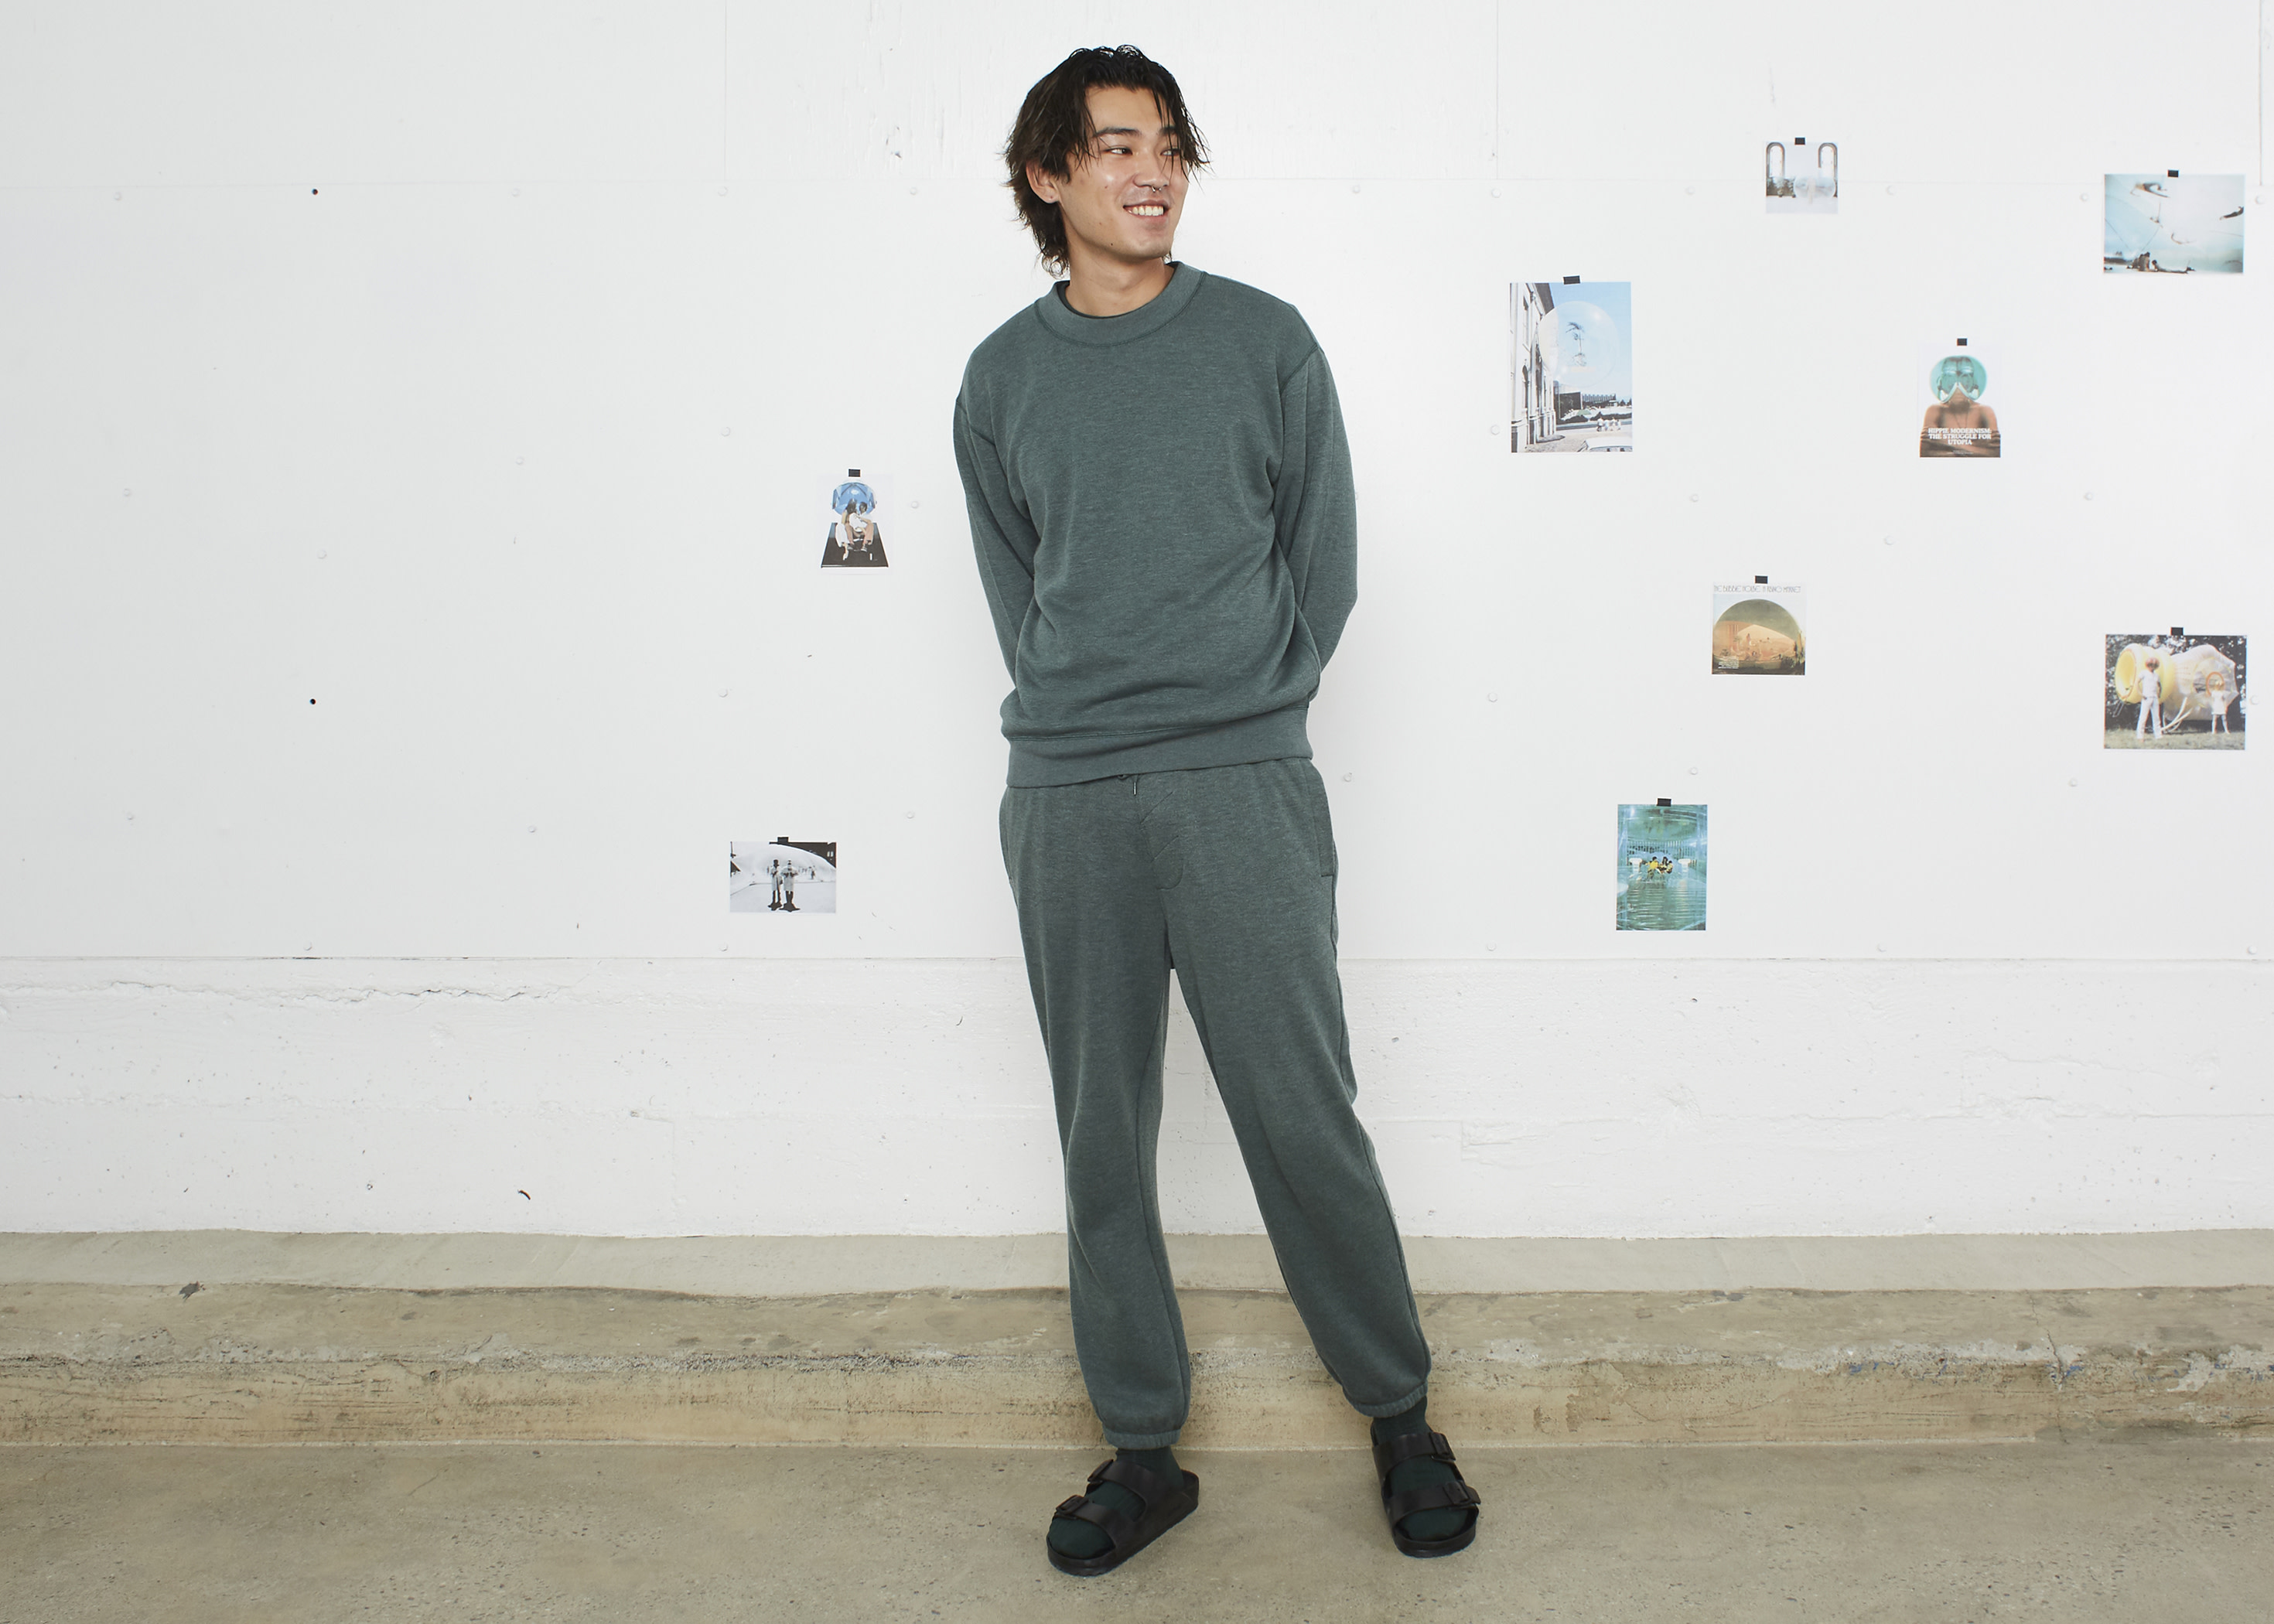 Men's Loungewear Brands That Stood Out During the Pandemic